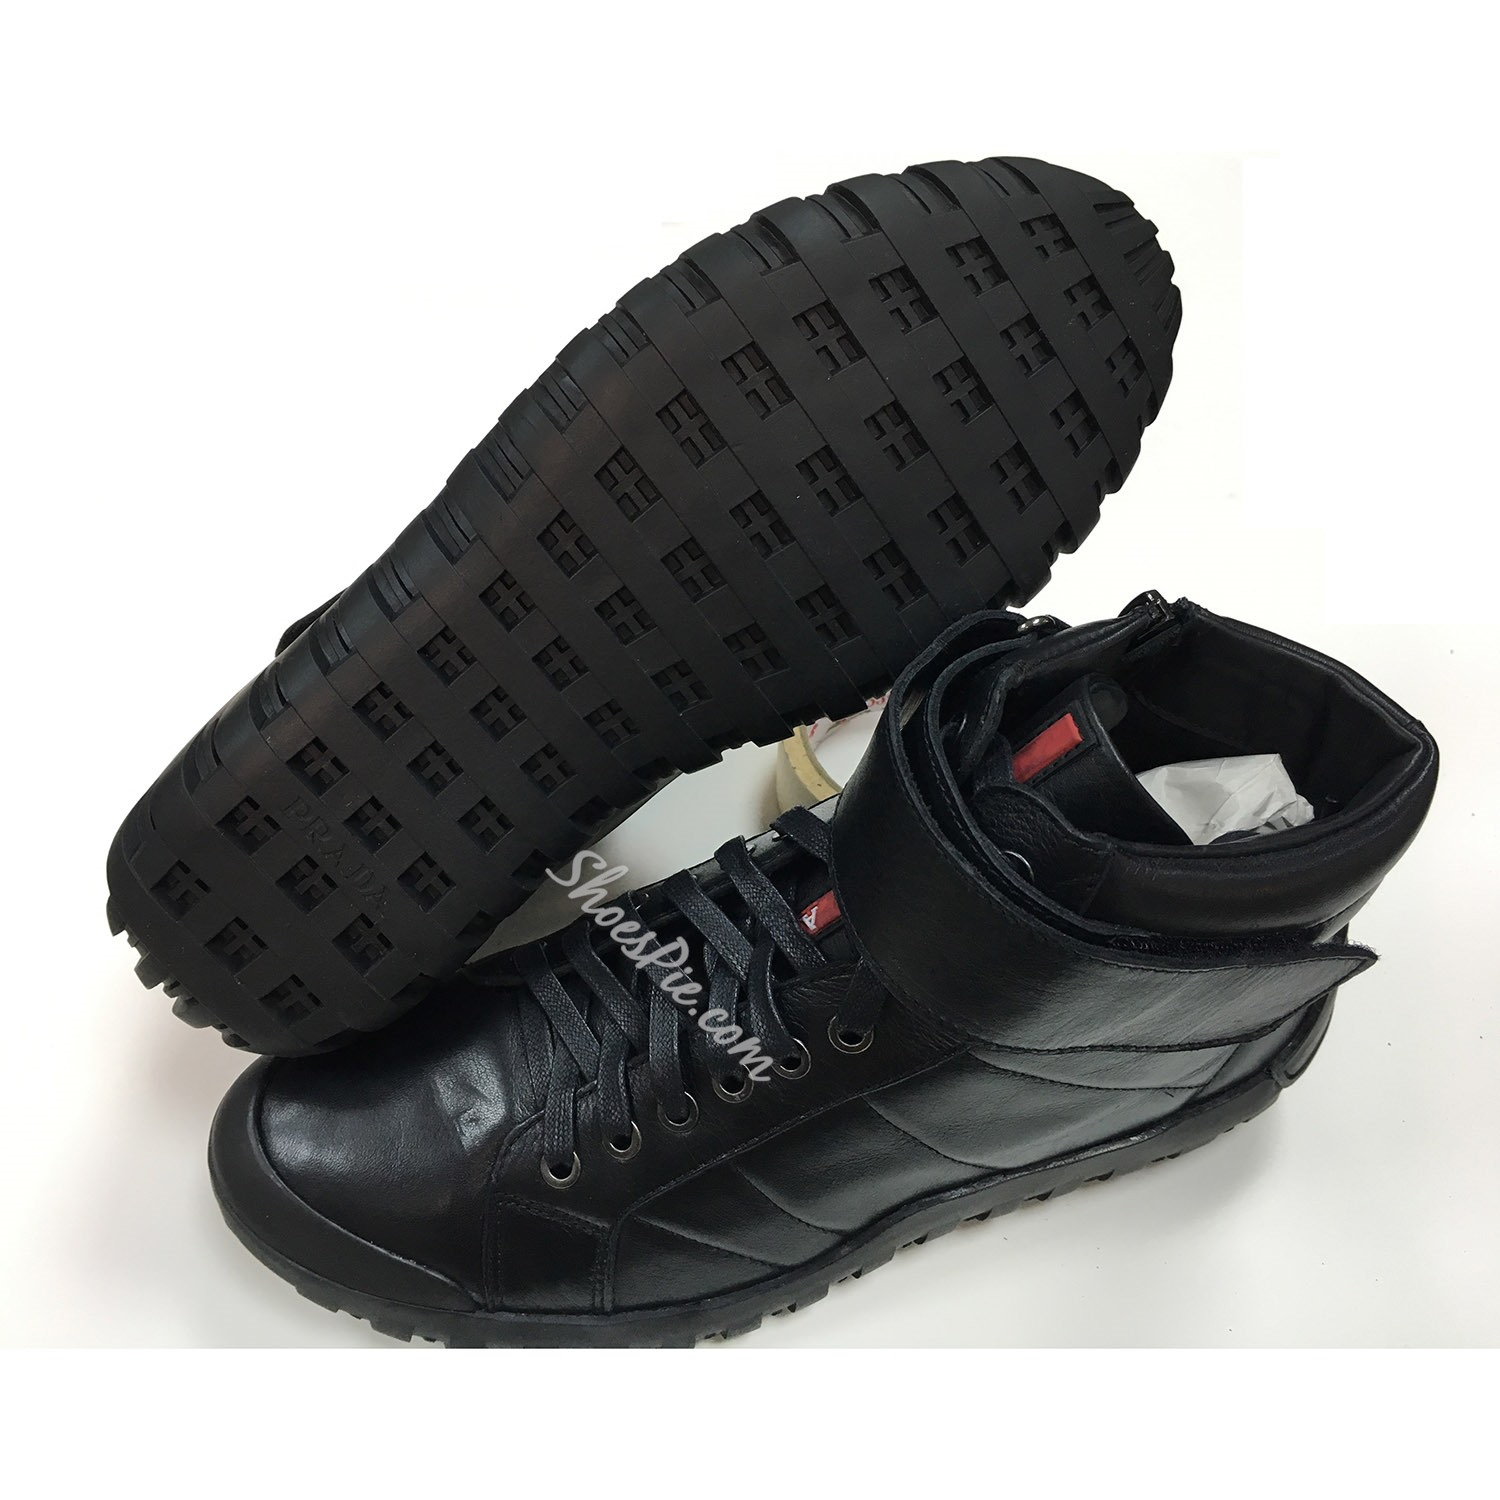 Casual Fashion Boots Leather Men's Sneakers